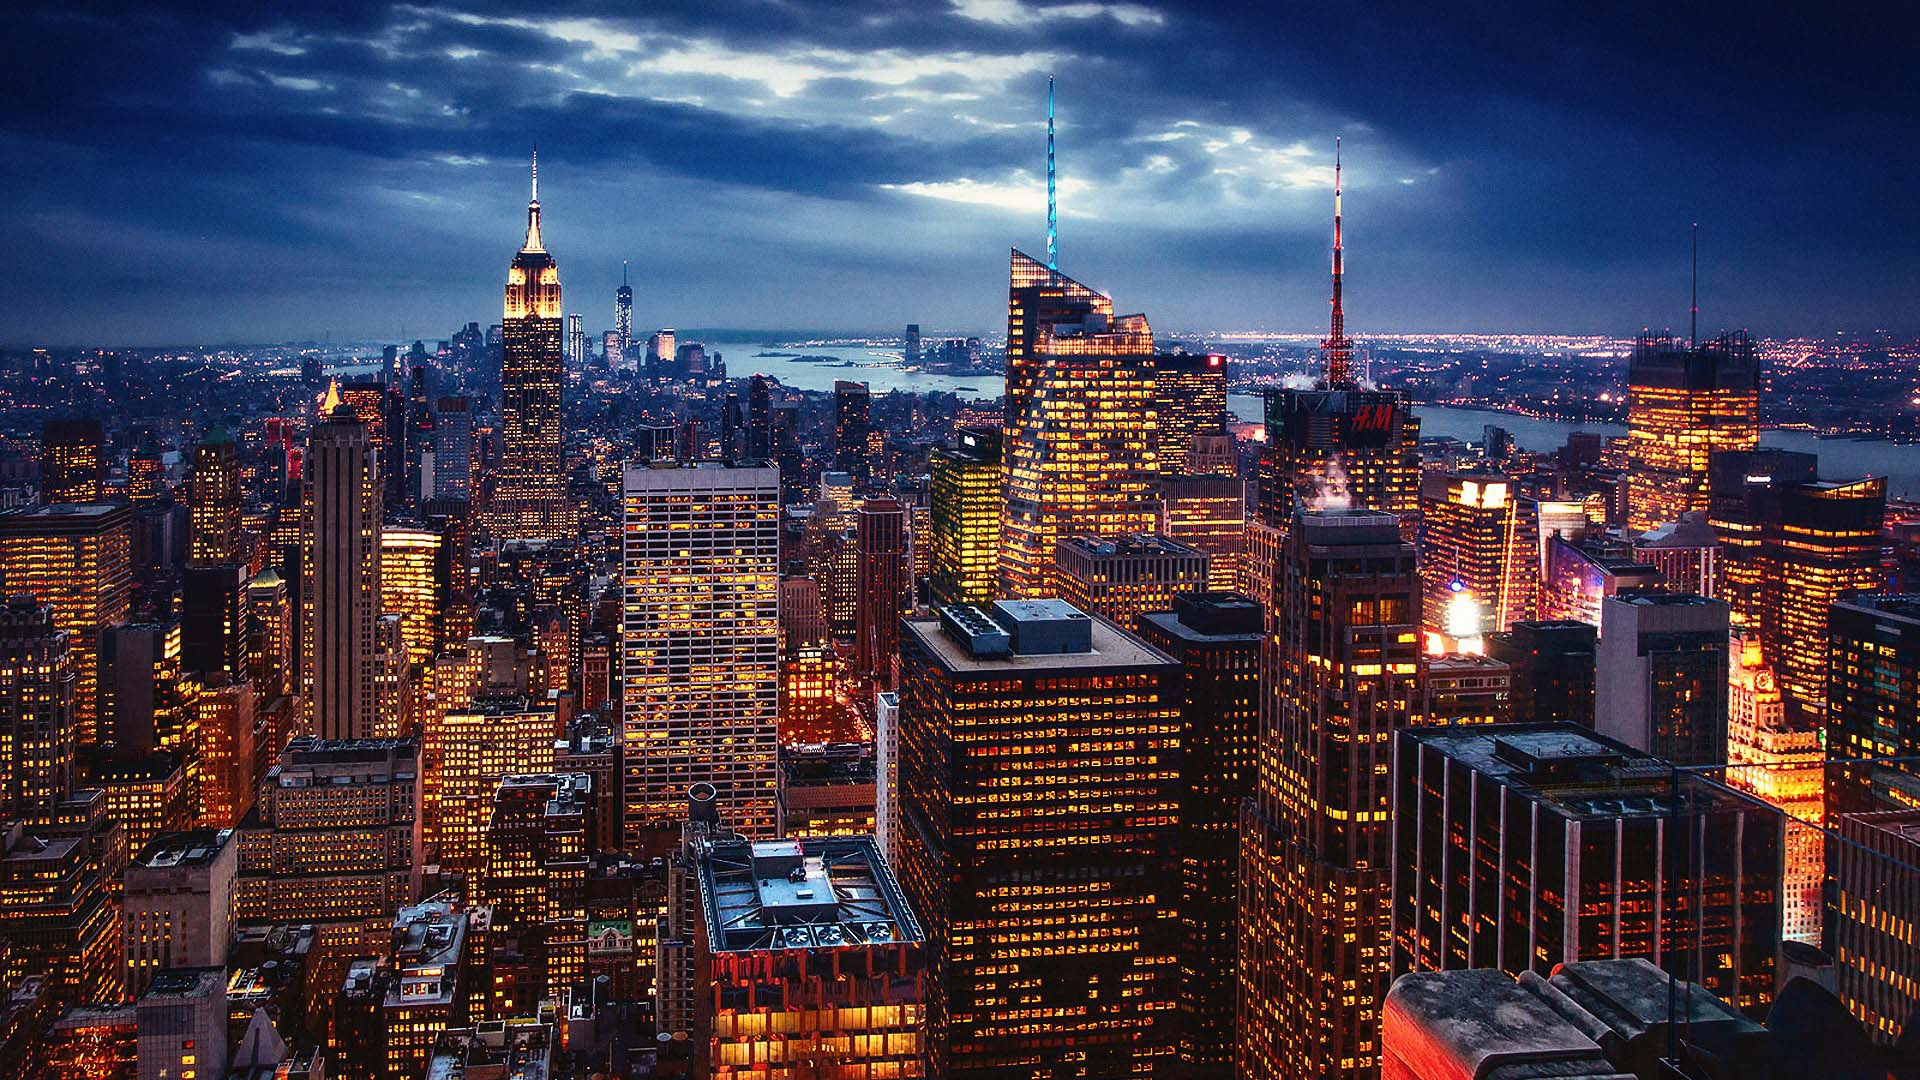 Nyc at night wallpapers Gallery